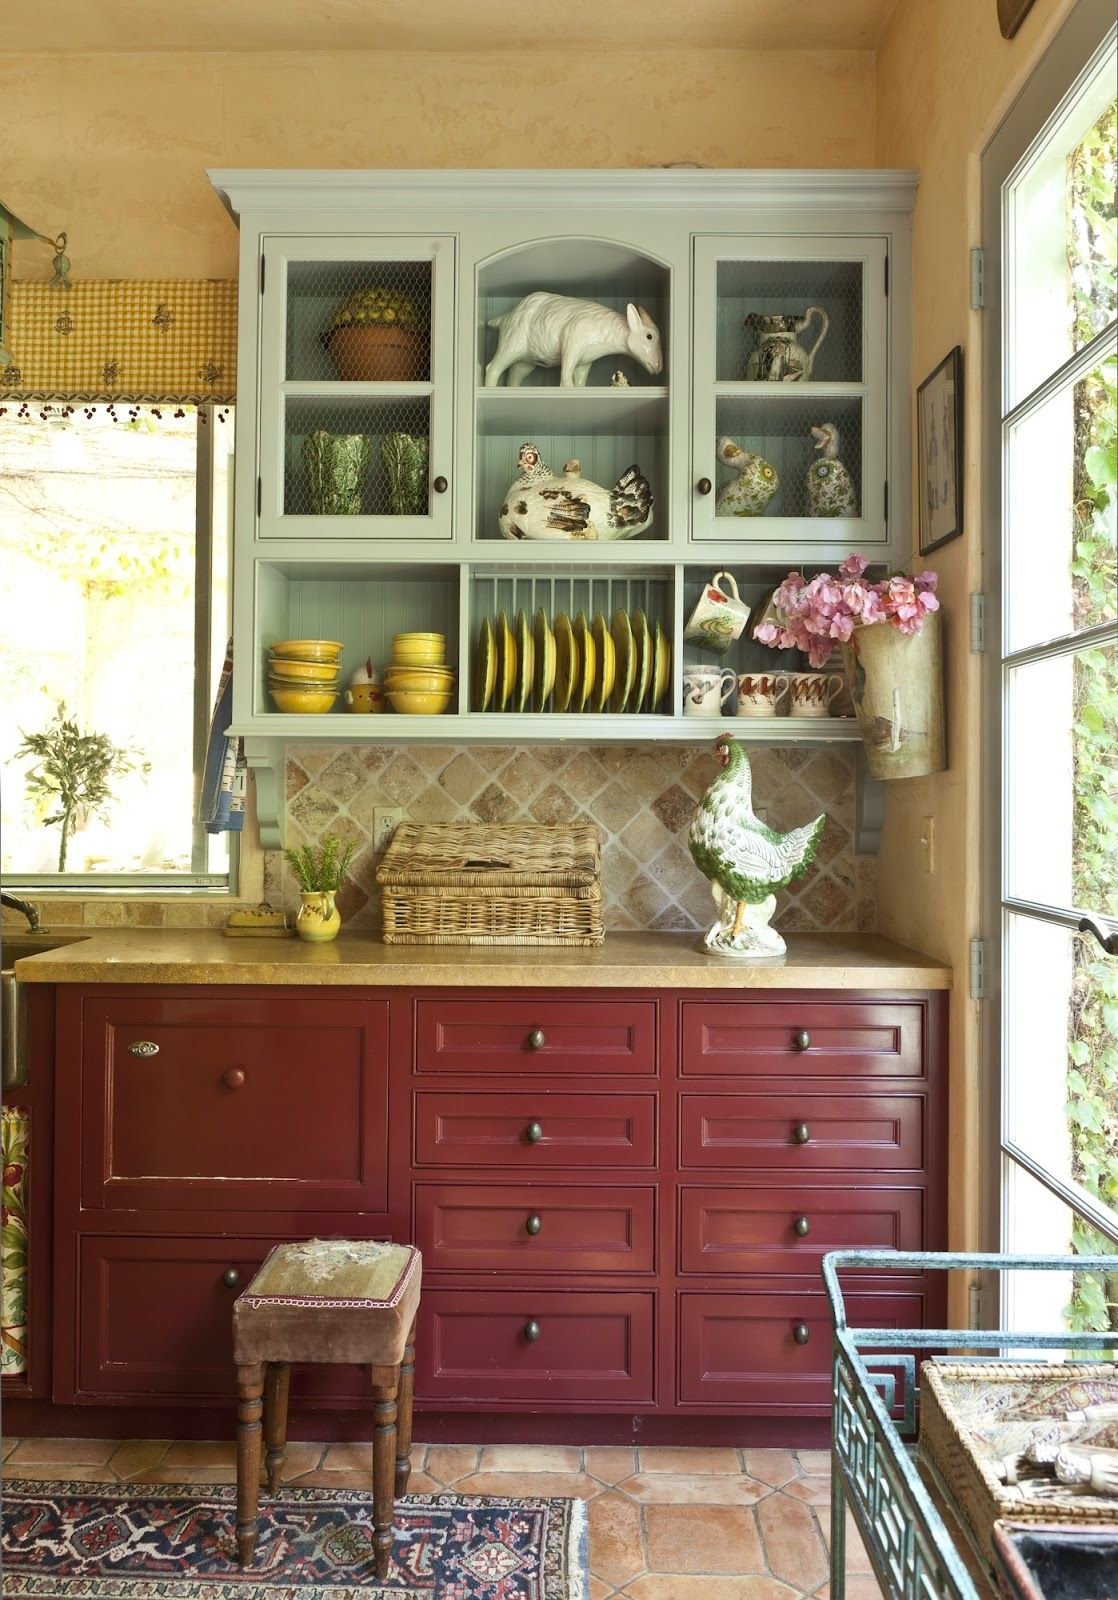 Red Country Kitchen Cabinets I Have The Same Parchment Technique On My Kitchen Walls And